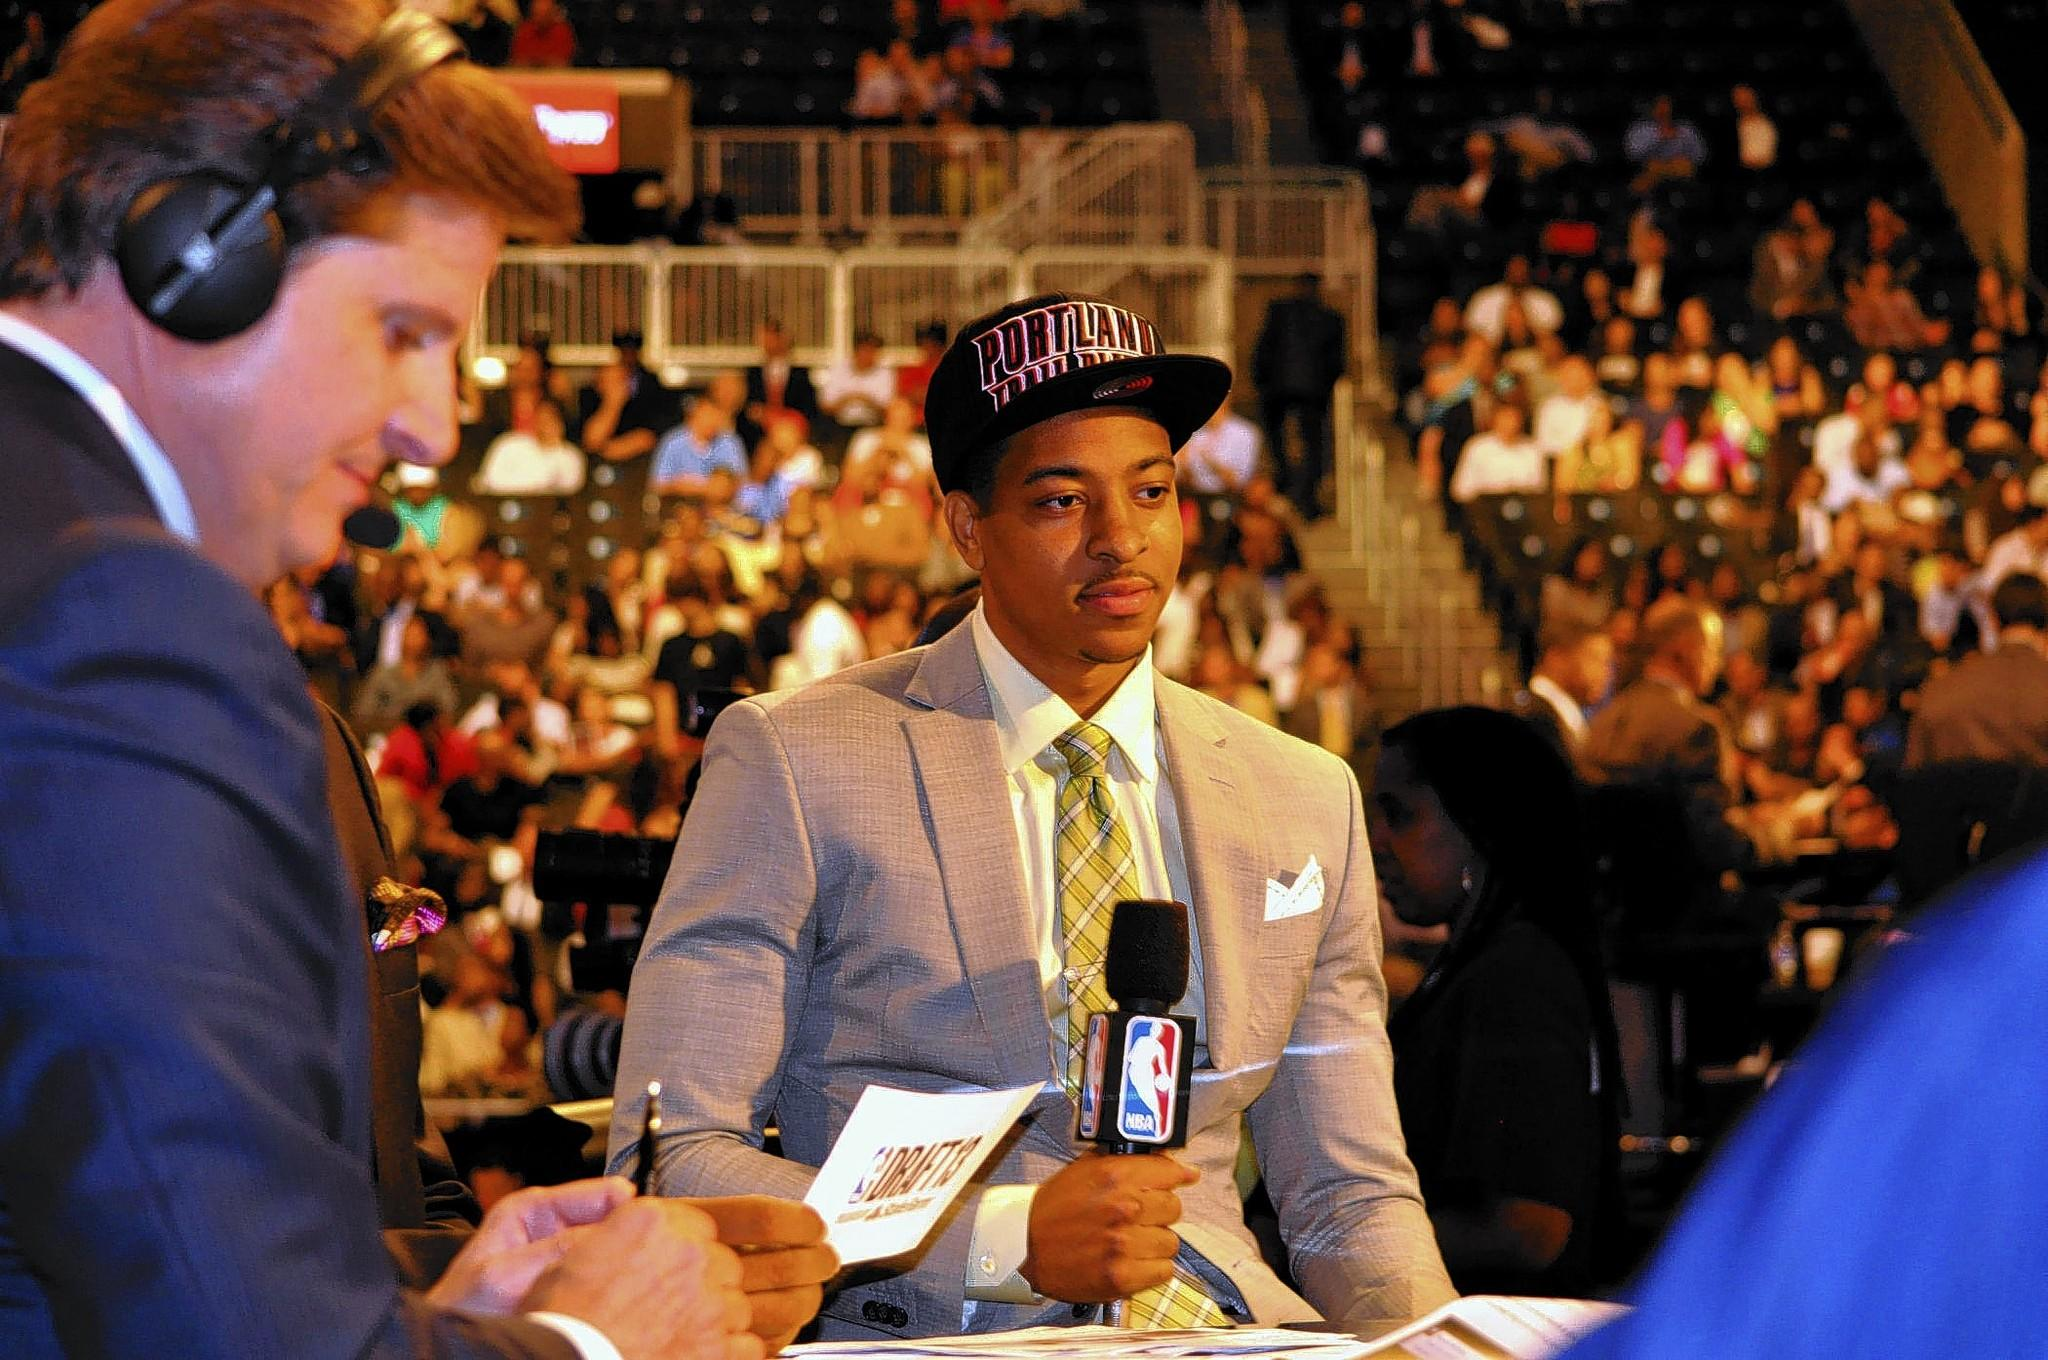 Lehigh grad C.J. McCollum waits to do an interview after he was drafted 10th by the Portland Trailblazers last June.